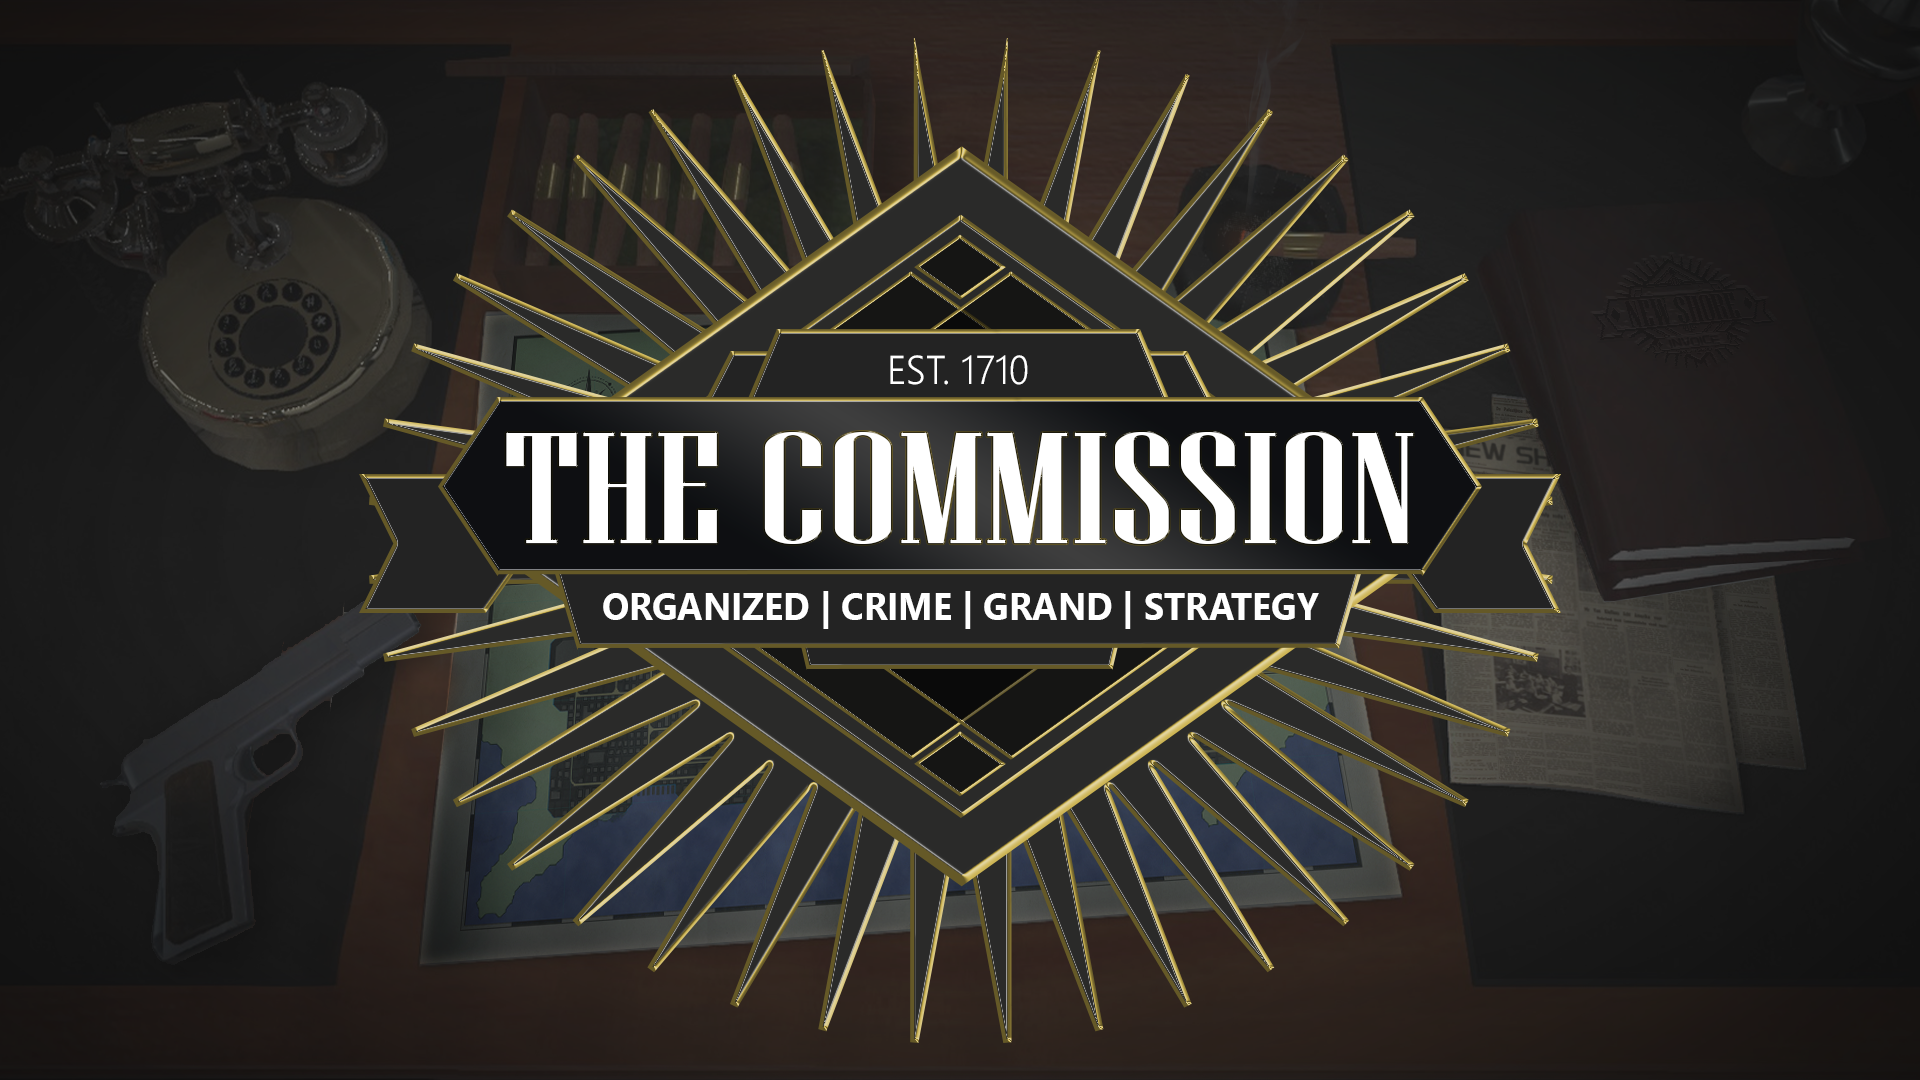 TheCommission_SplashScreen.png